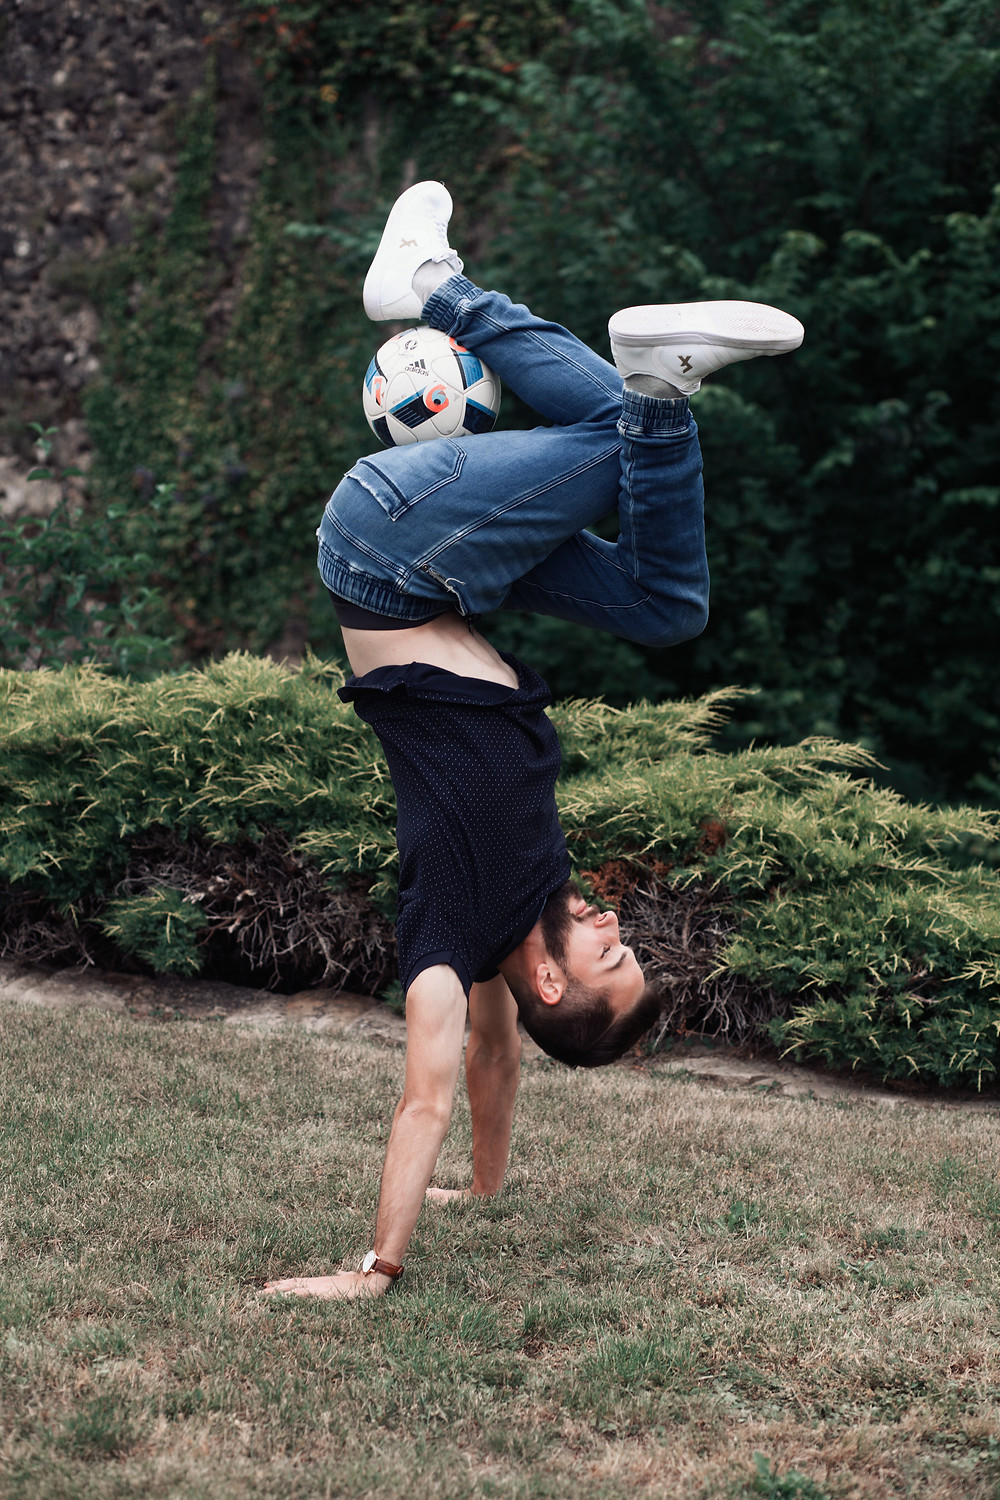 Football freestyler Sven Fielitz performing in Luxembourg City